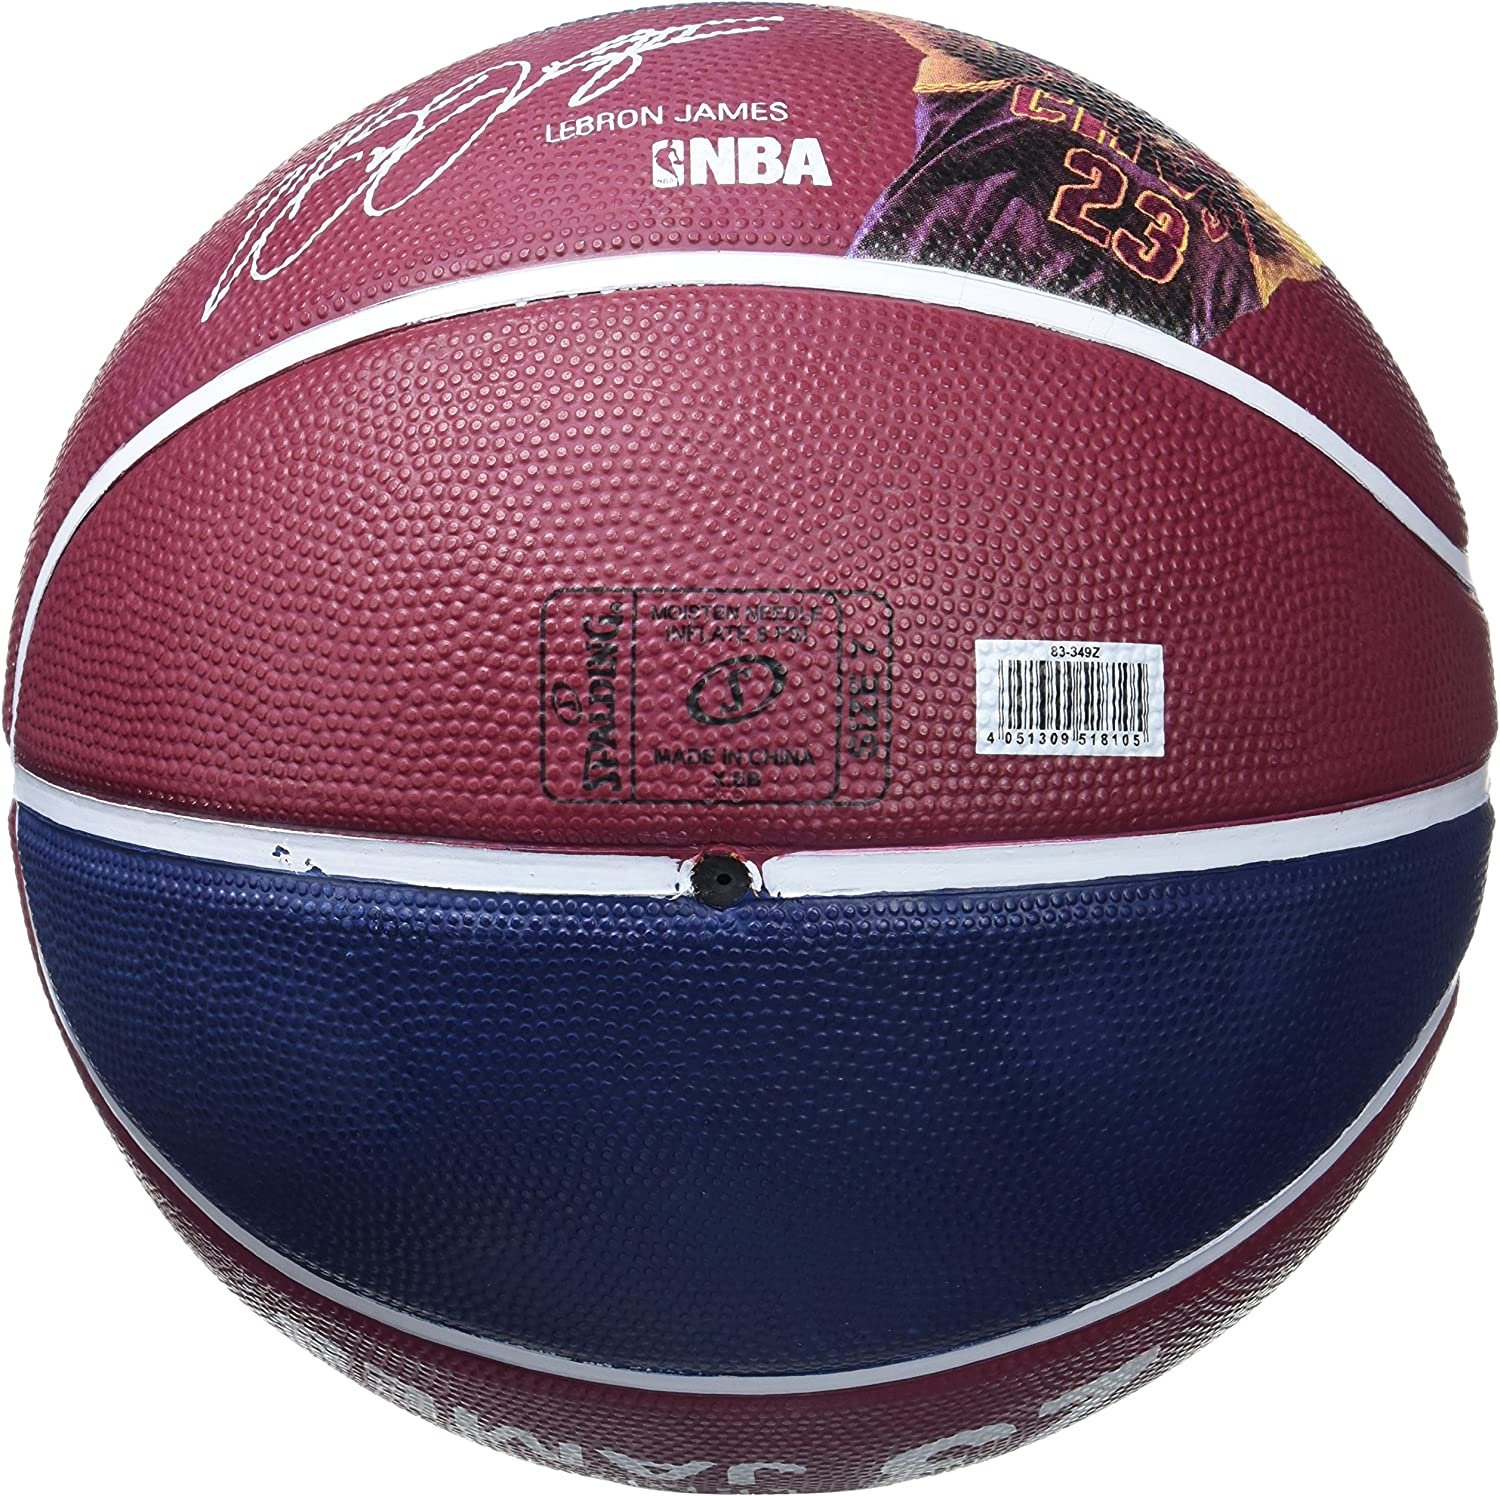 Ballon Spalding Player LeBron James: Amazon.es: Deportes y aire libre